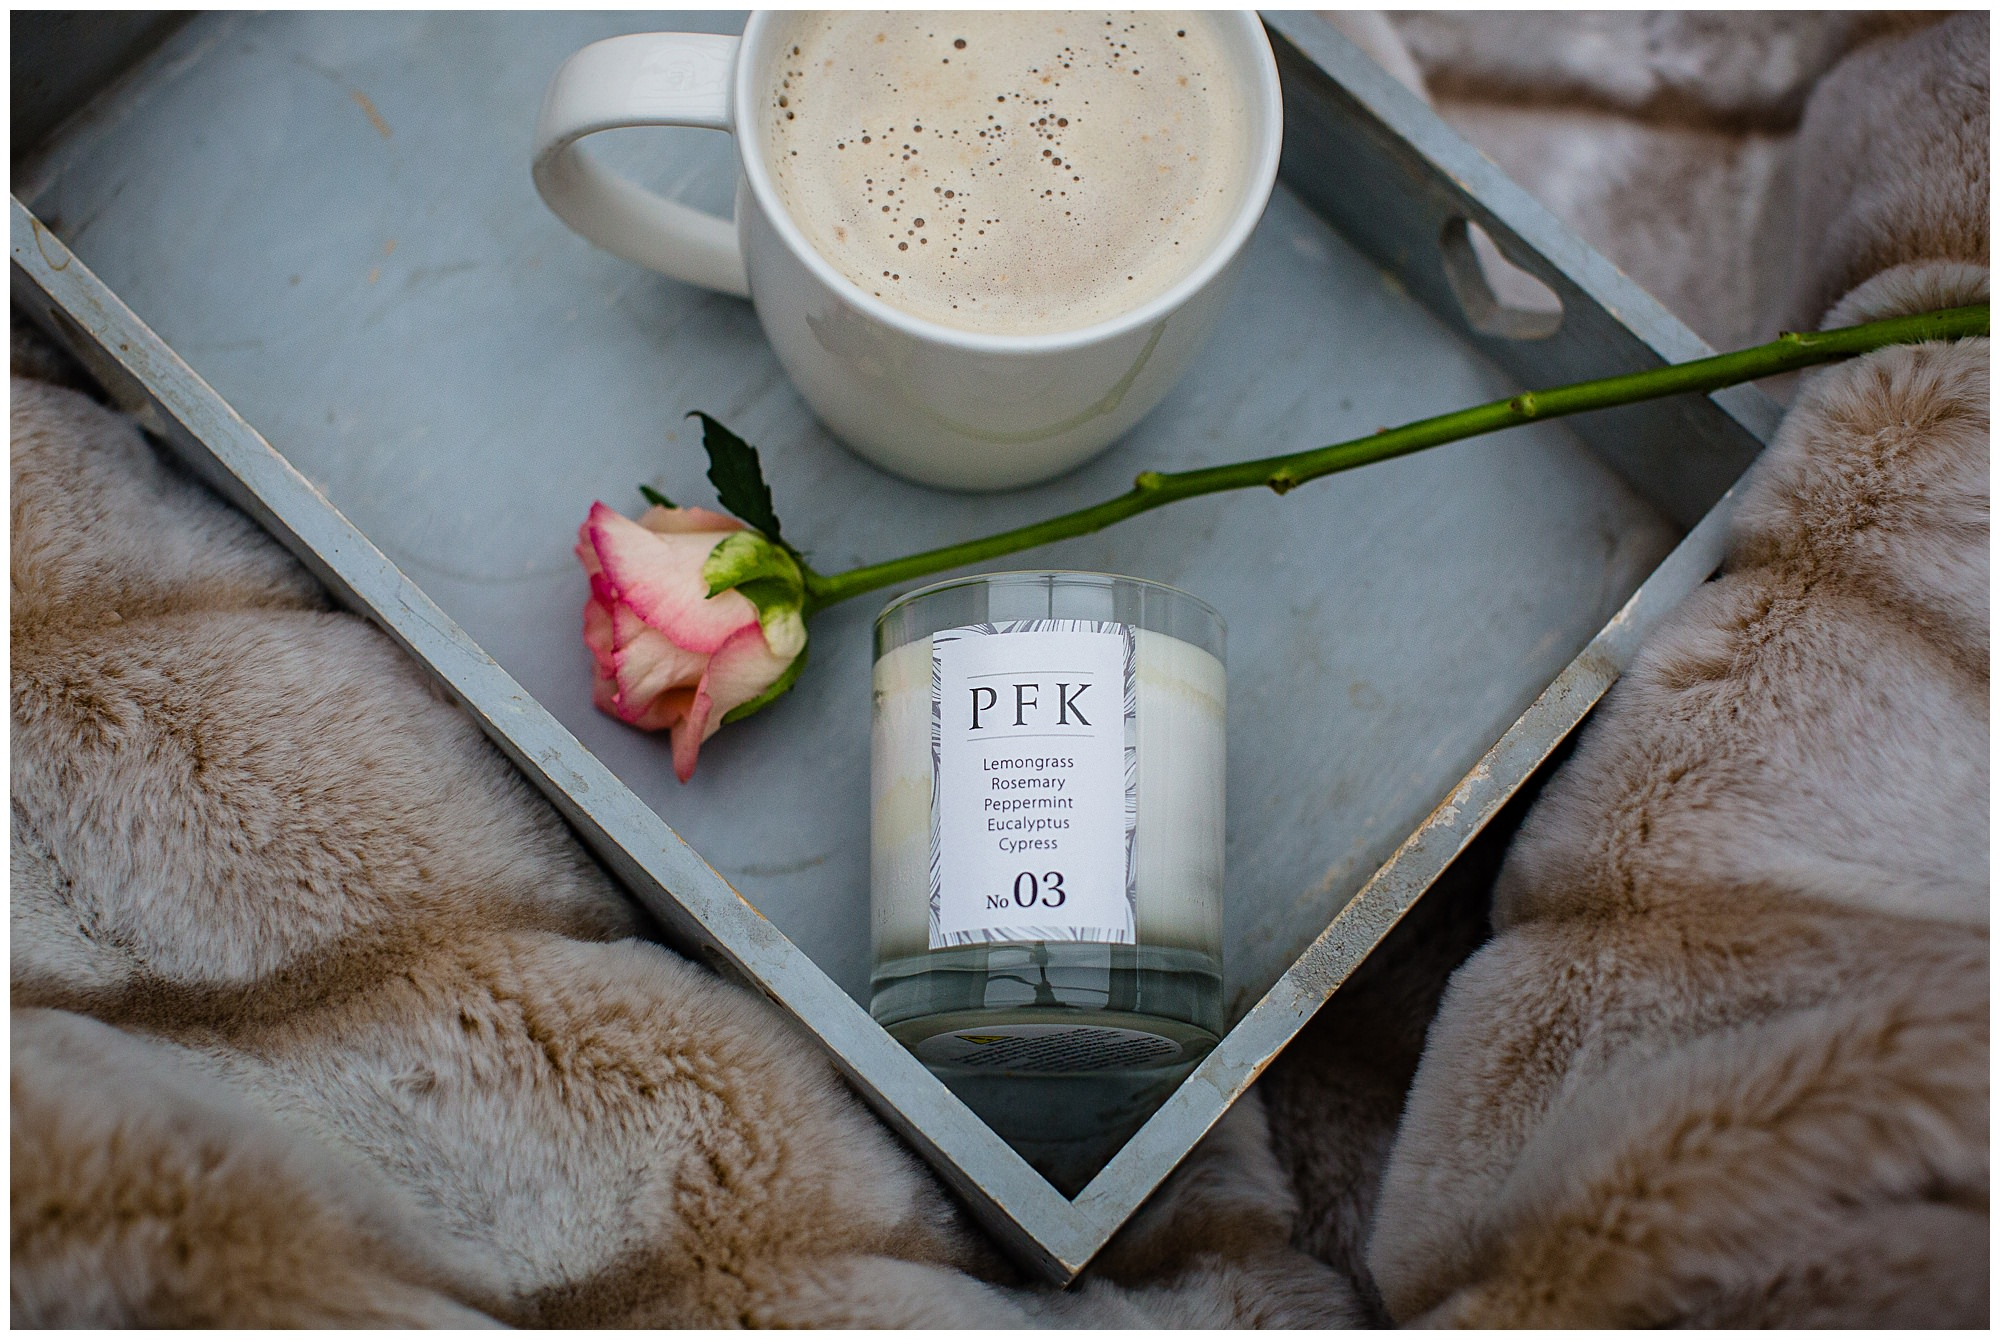 PFK candle on grey tray, with light pink rose and hot cup of coffee amongst fur blanket